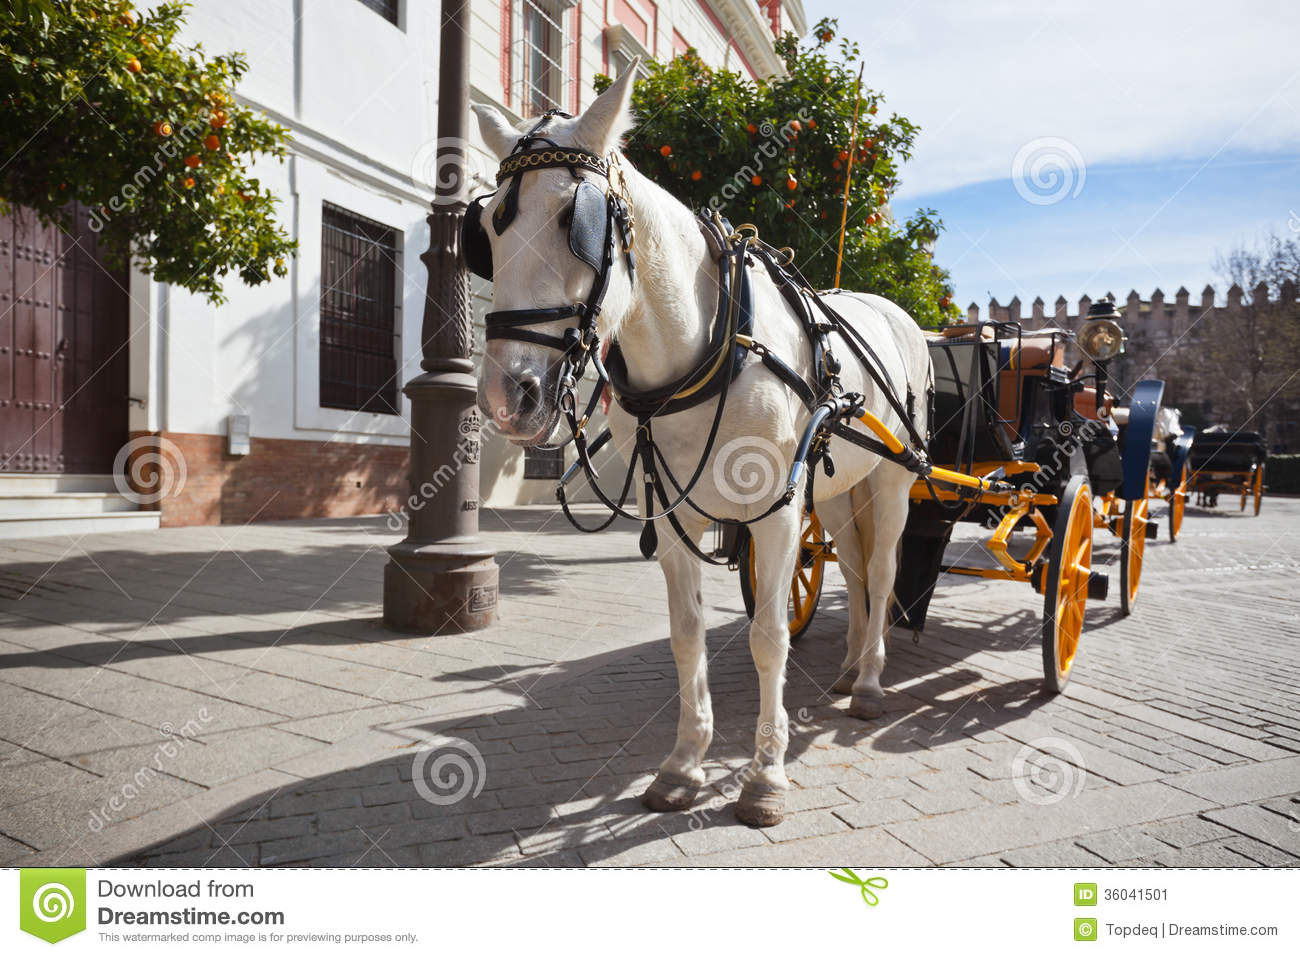 Horse Transport For Tourists In Sevilla Spain Stock Image